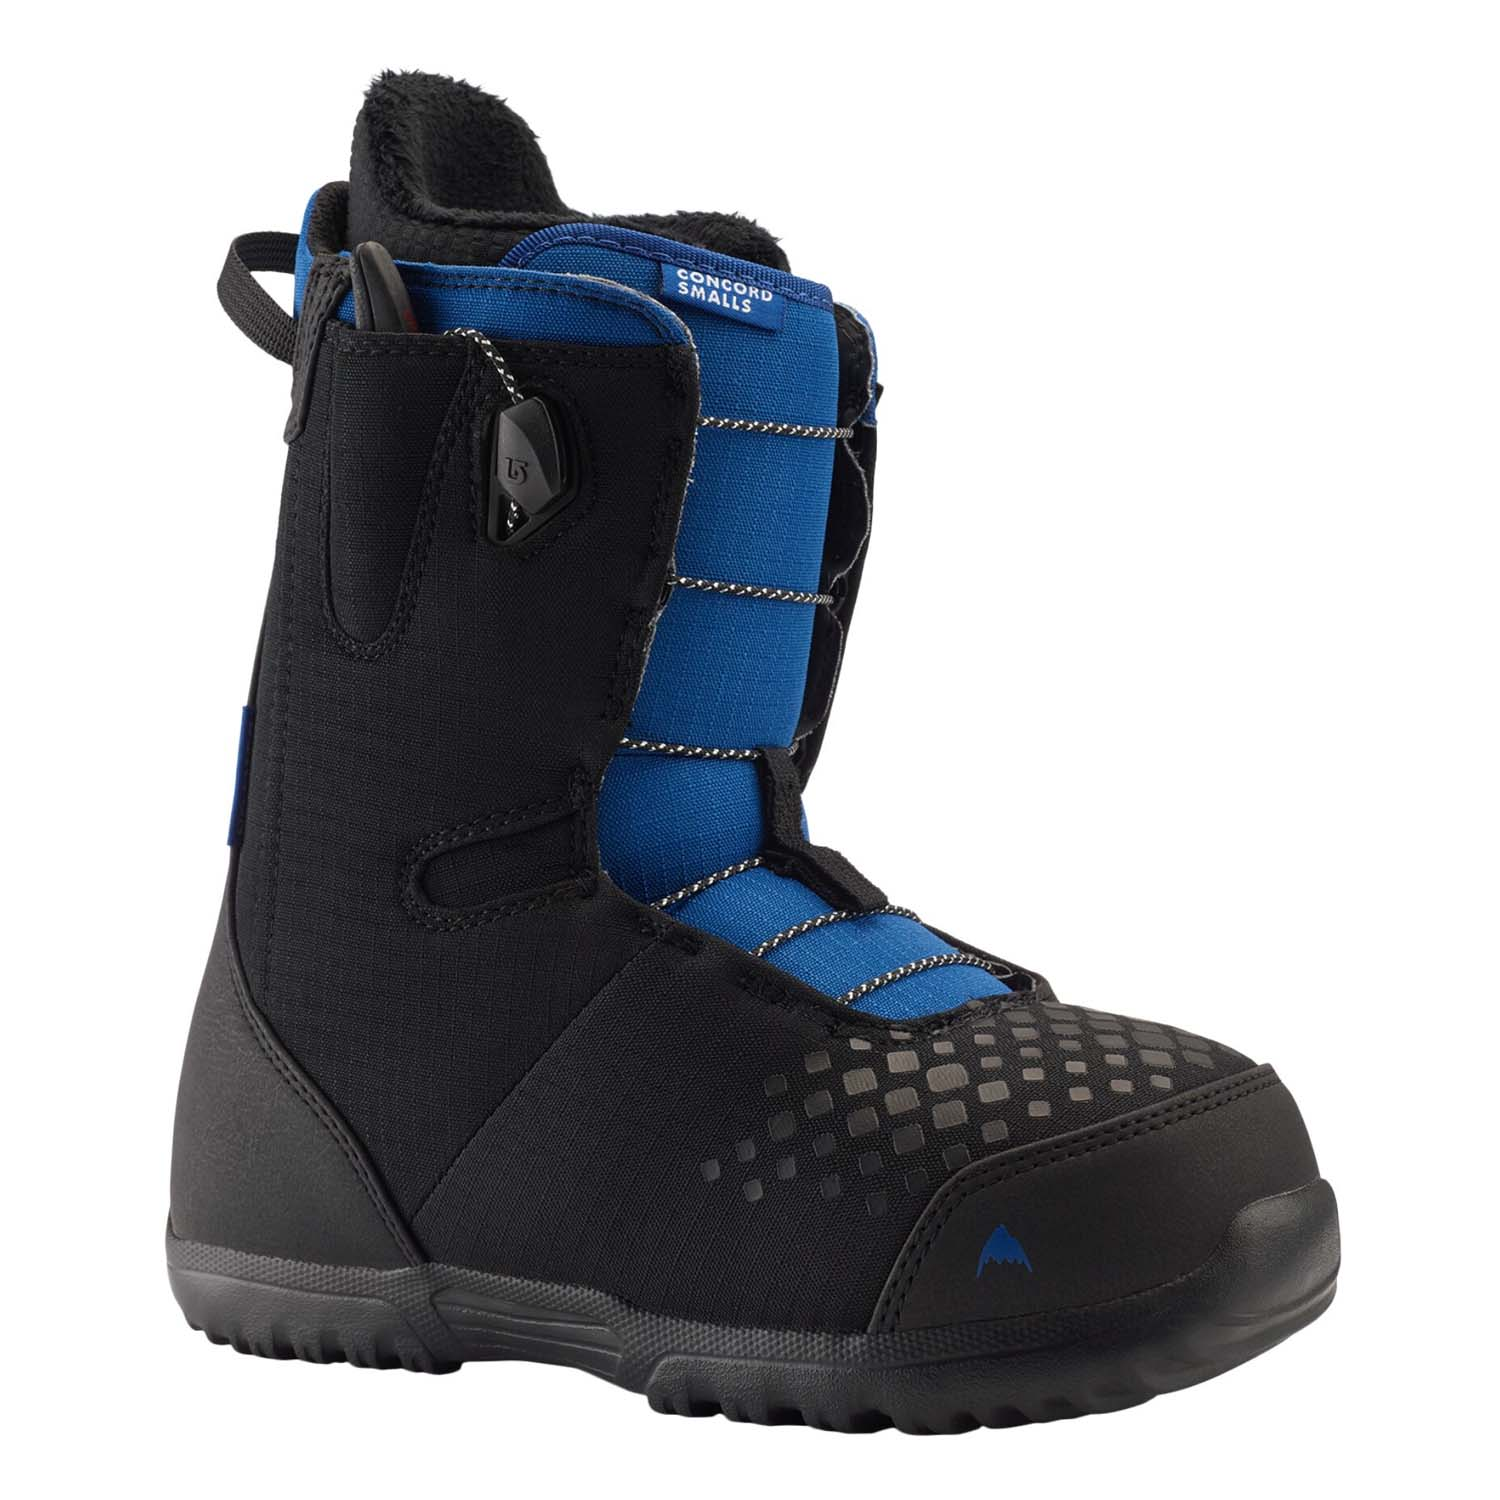 Burton Concord Smalls Snowboard Boot Black/Blue 2020